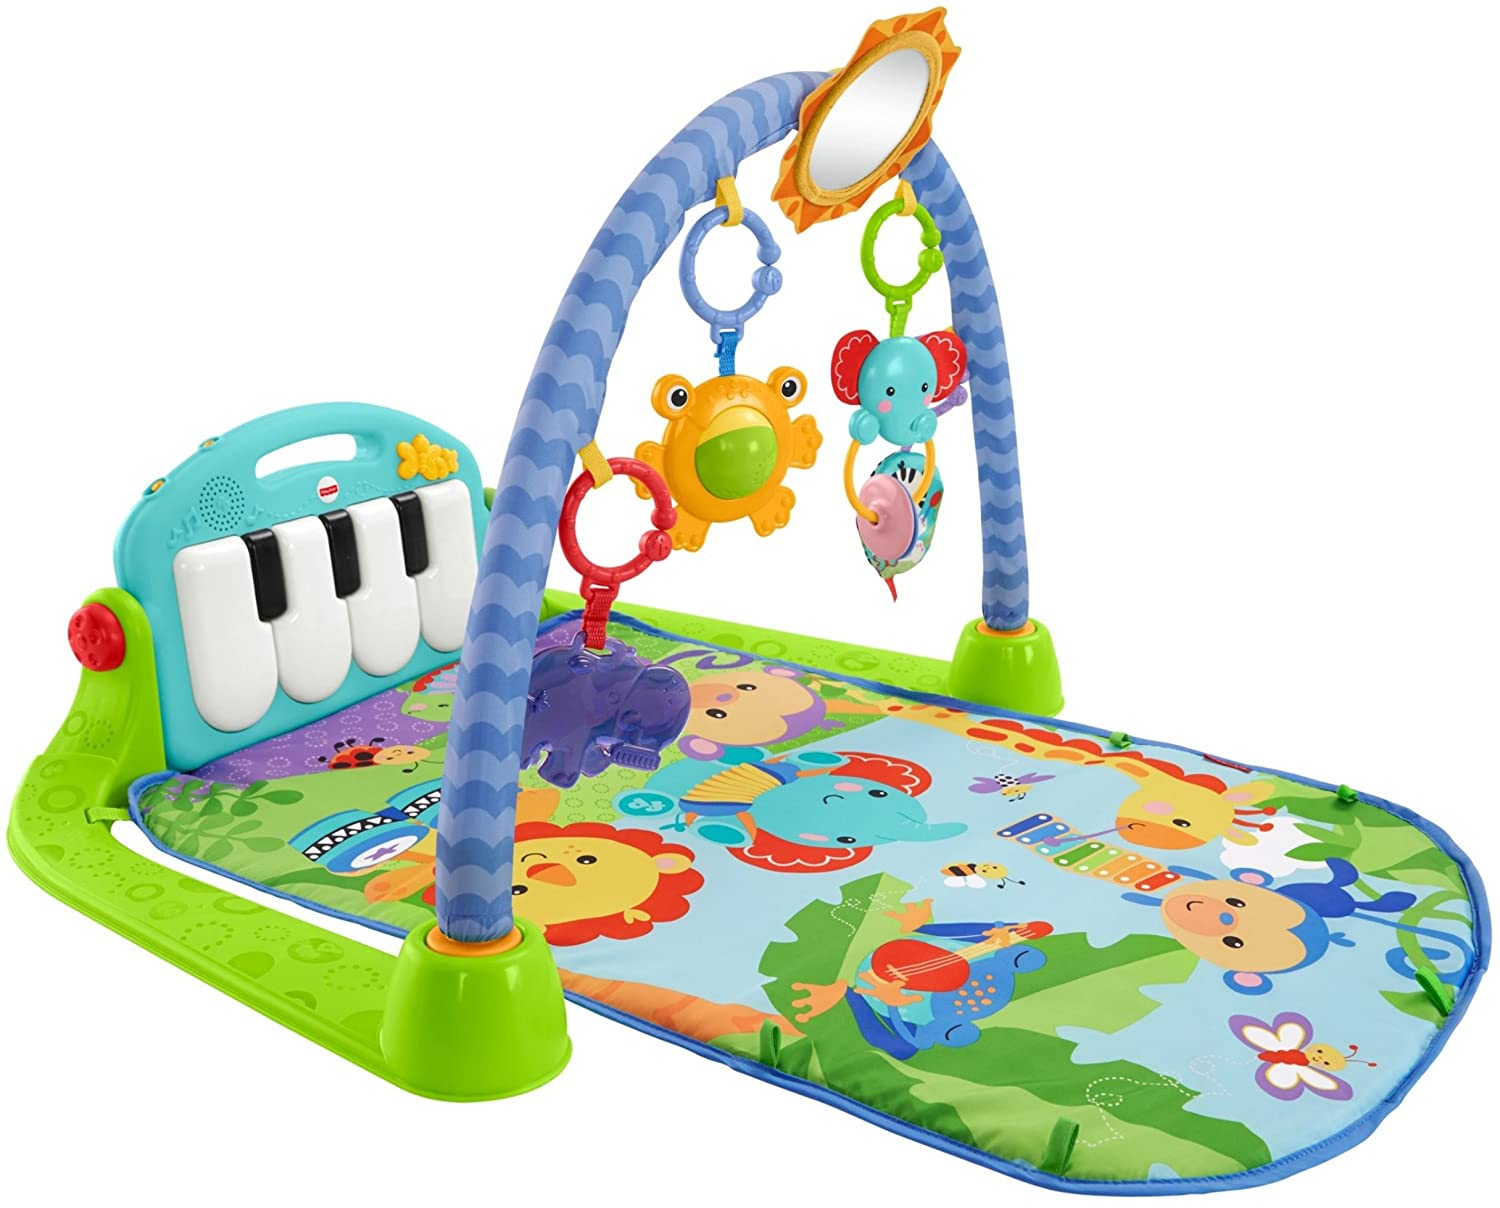 FISHER-PRICE - Tapis Piano: Amazon.es: Juguetes y juegos